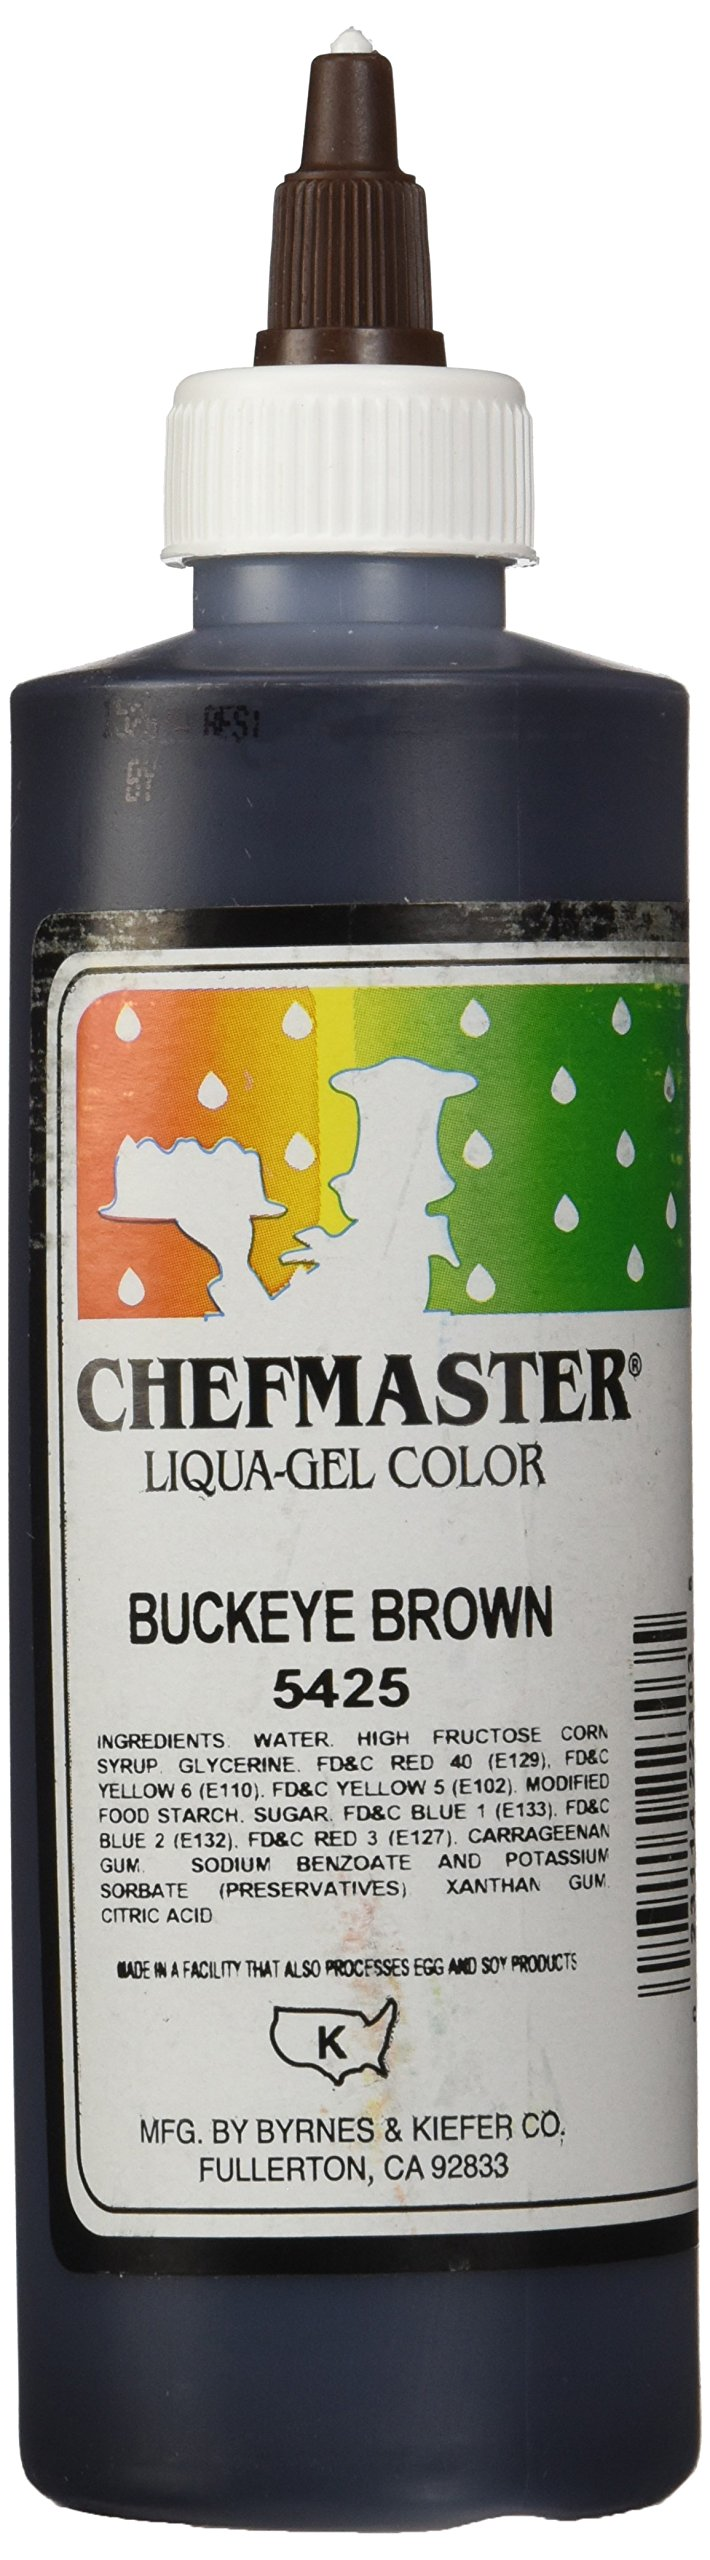 Chefmaster Liqua-Gel Food Color, 10.5-Ounce, Brown